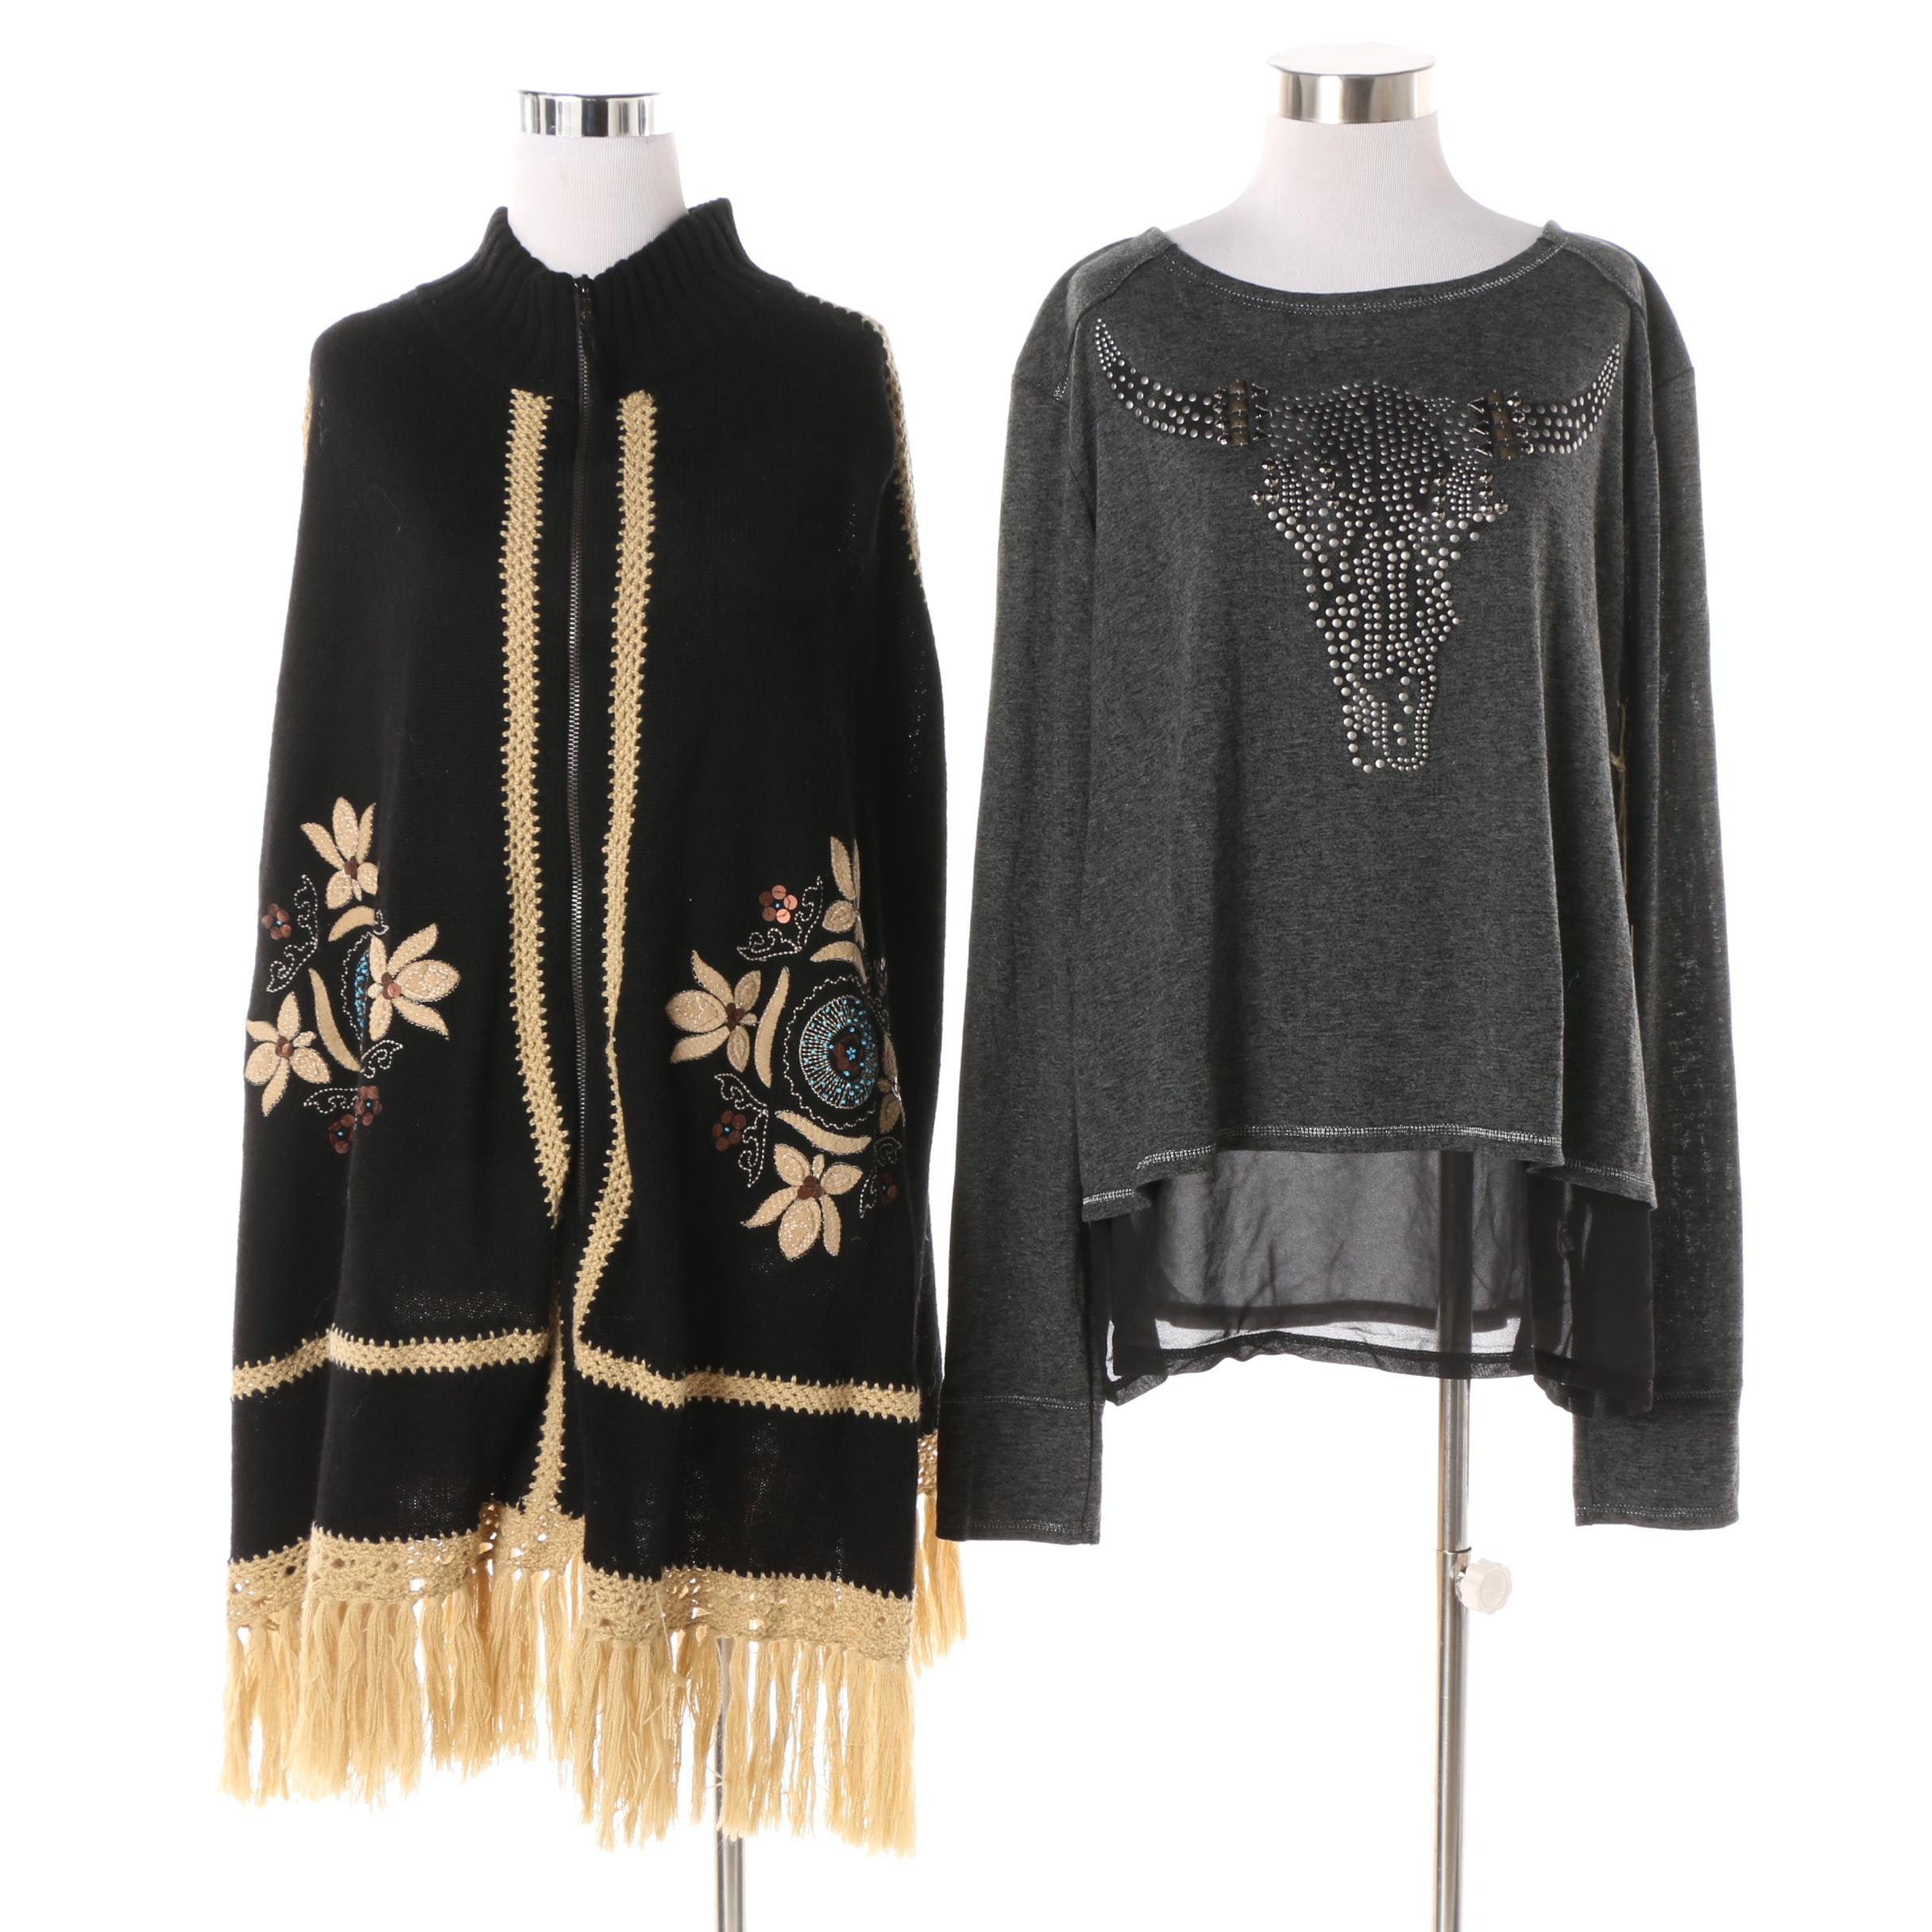 Double D Ranch of Texas Floral Appliqué Poncho and Steer Skull Studded Top